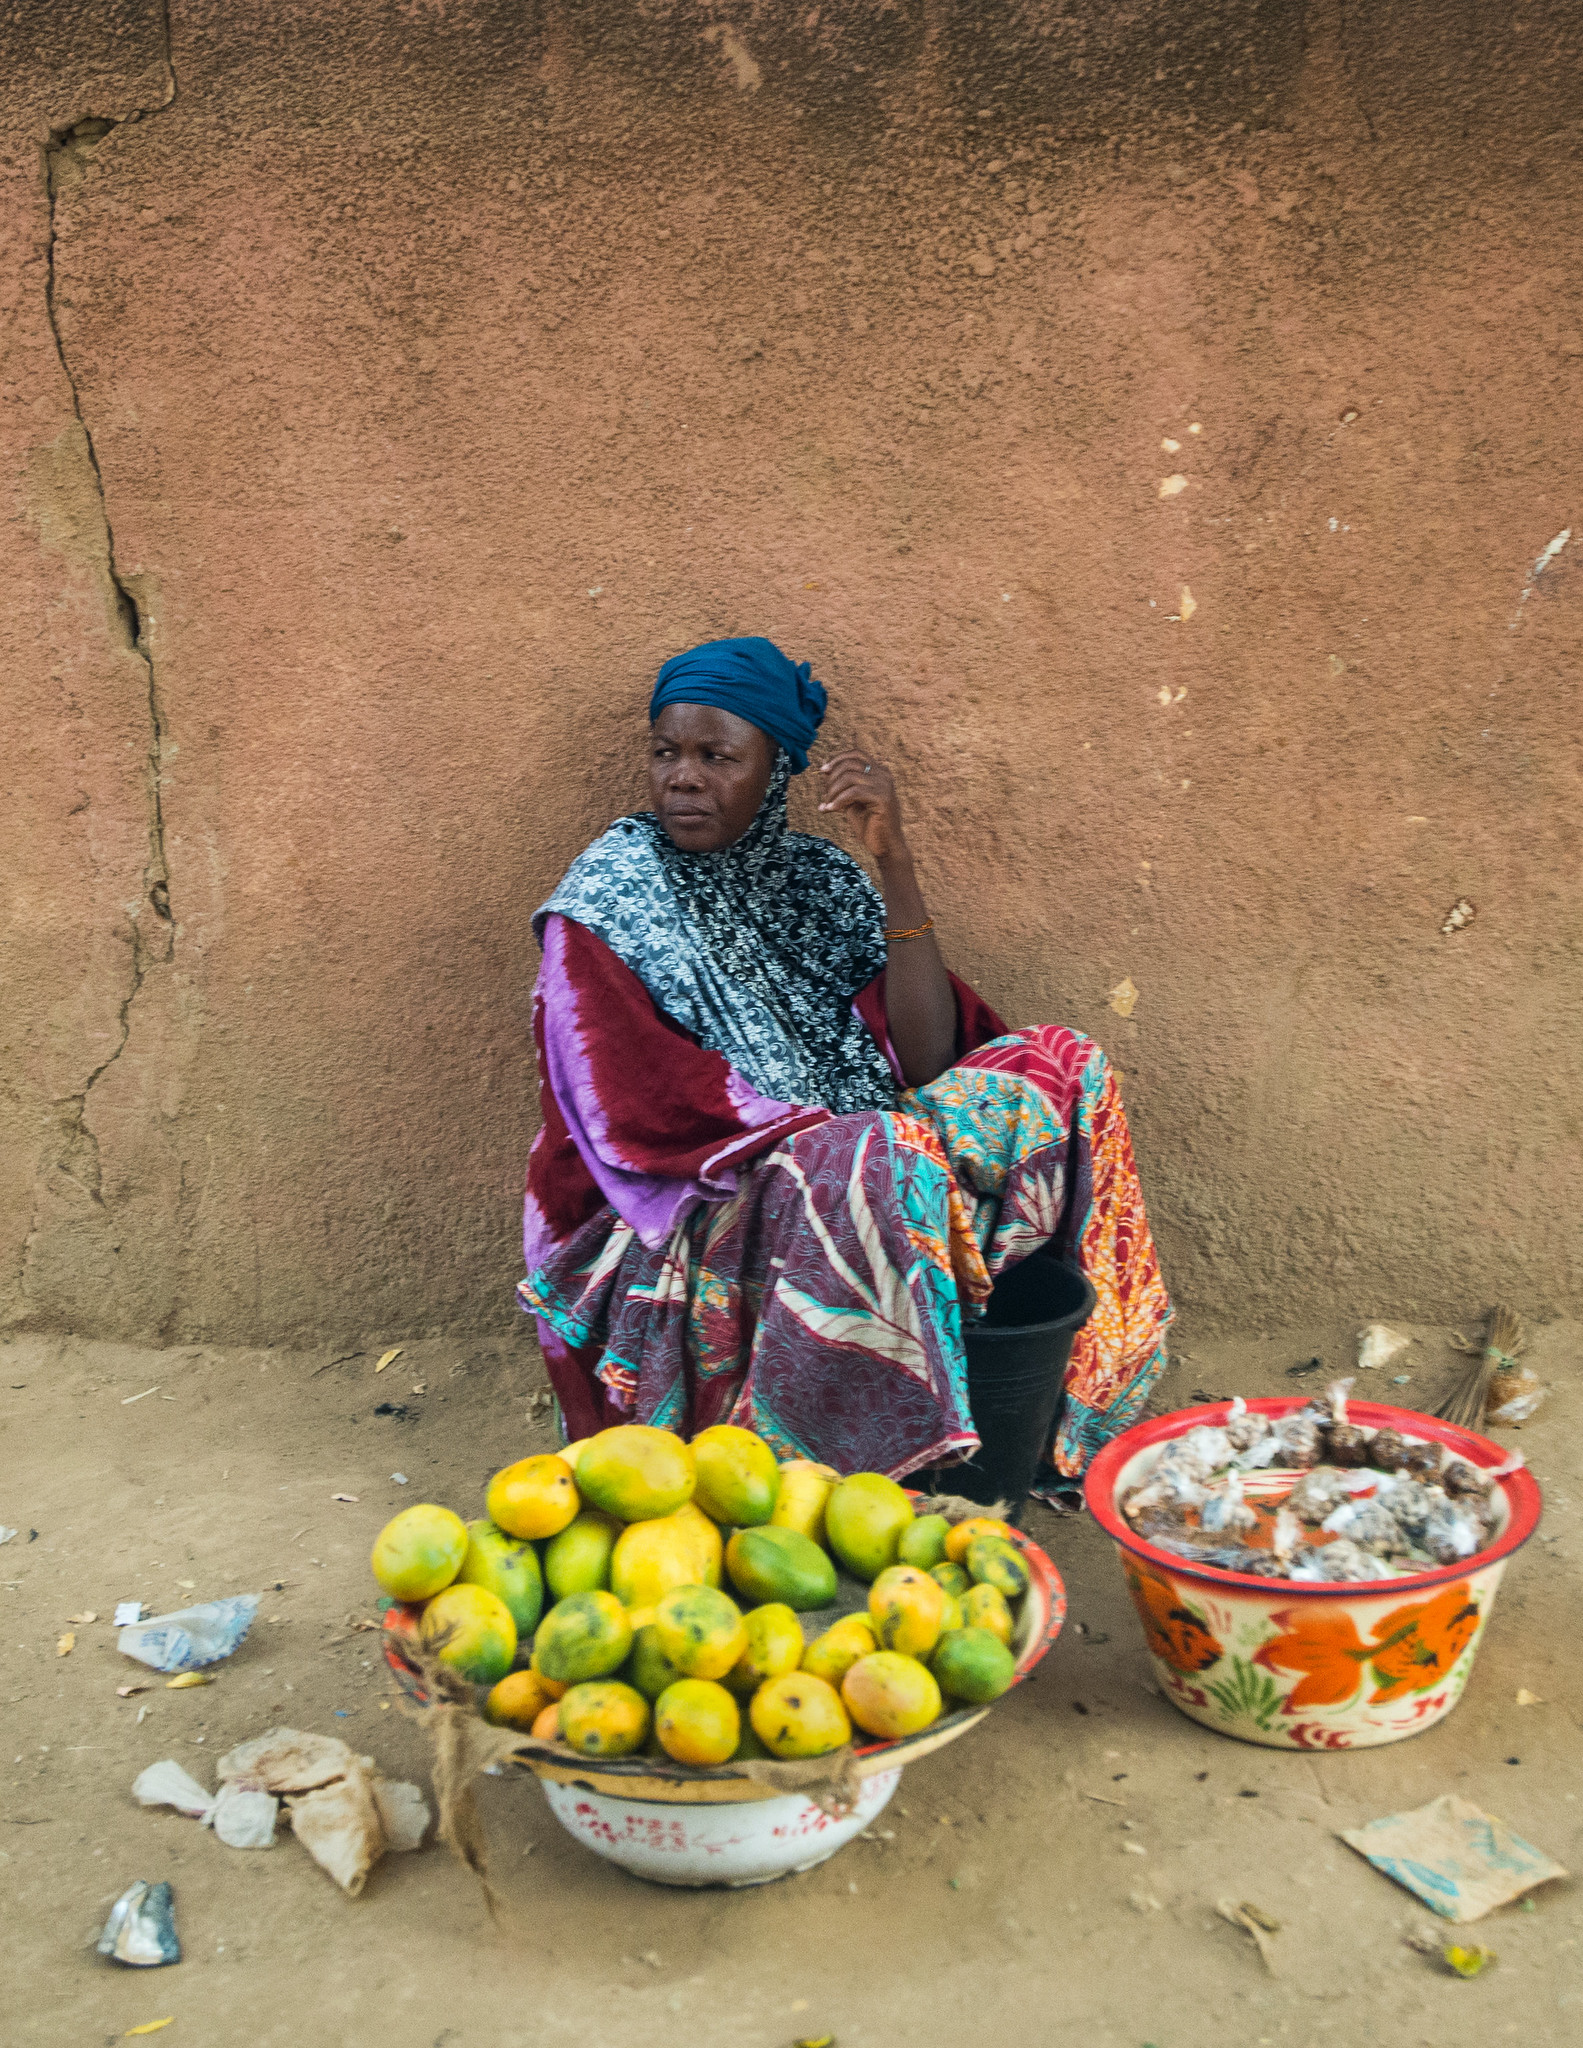 Woman Selling Mangoes